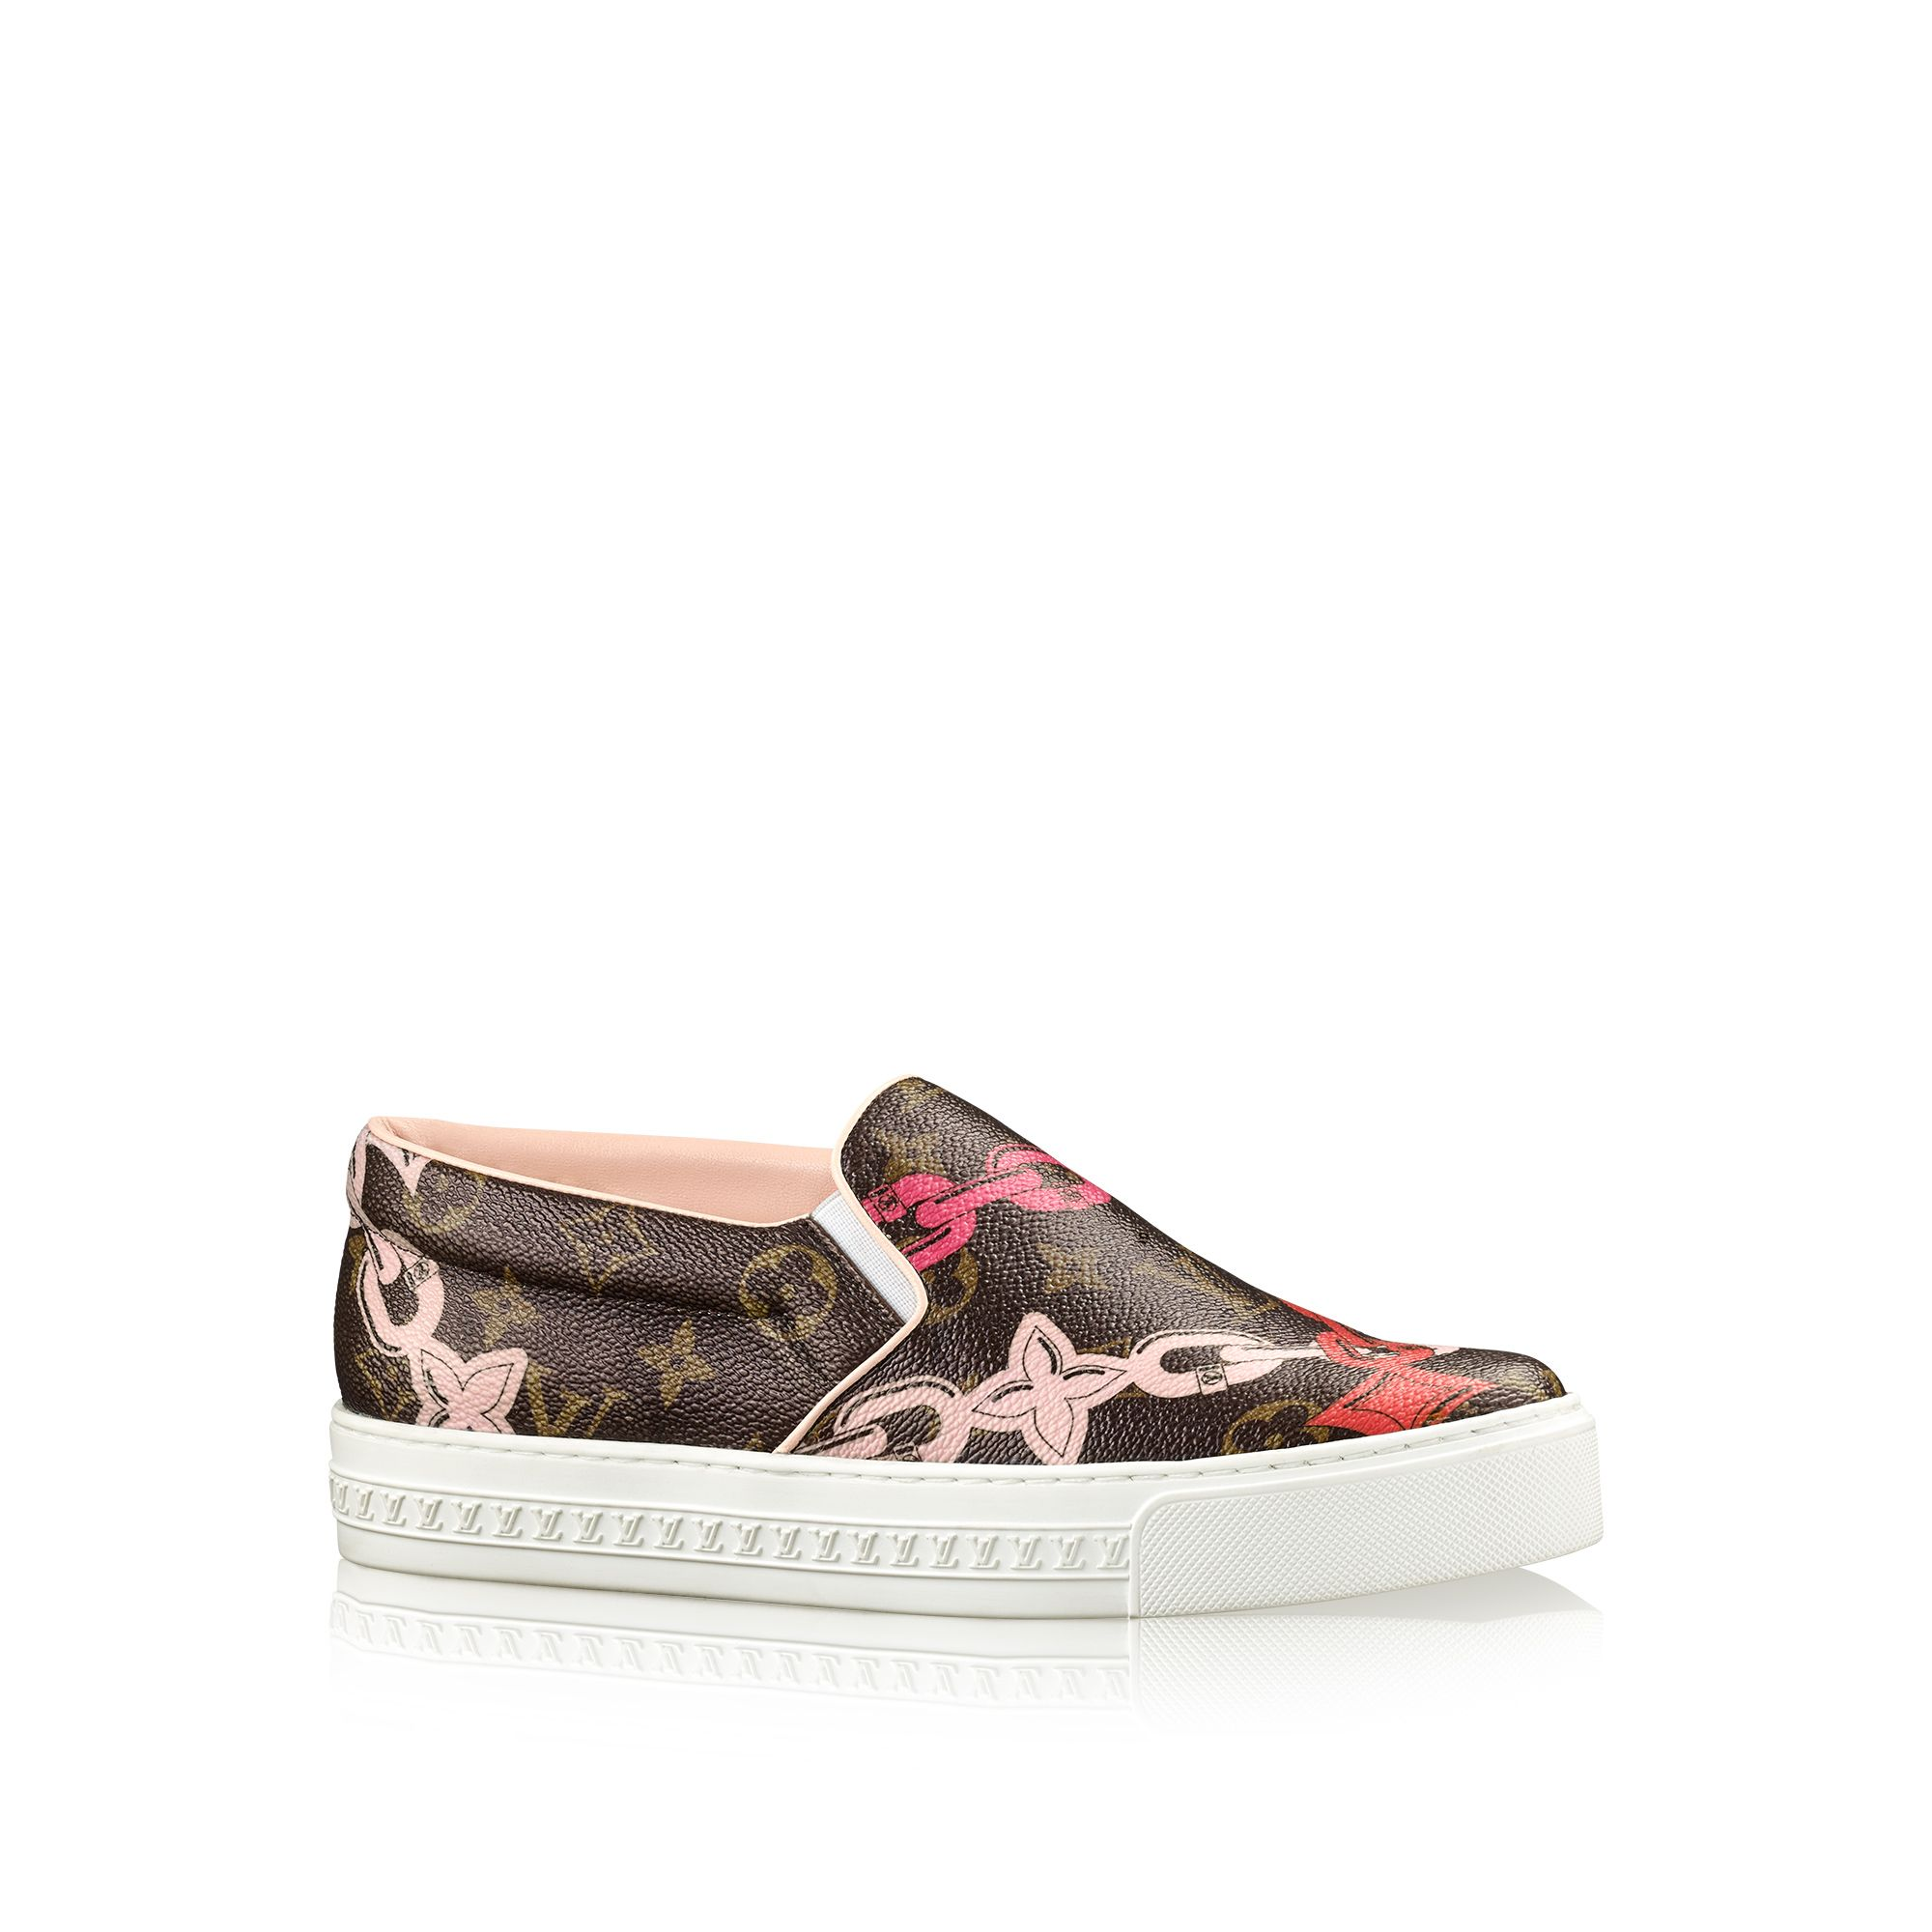 the harbor sneaker from the louis vuitton summer 2016